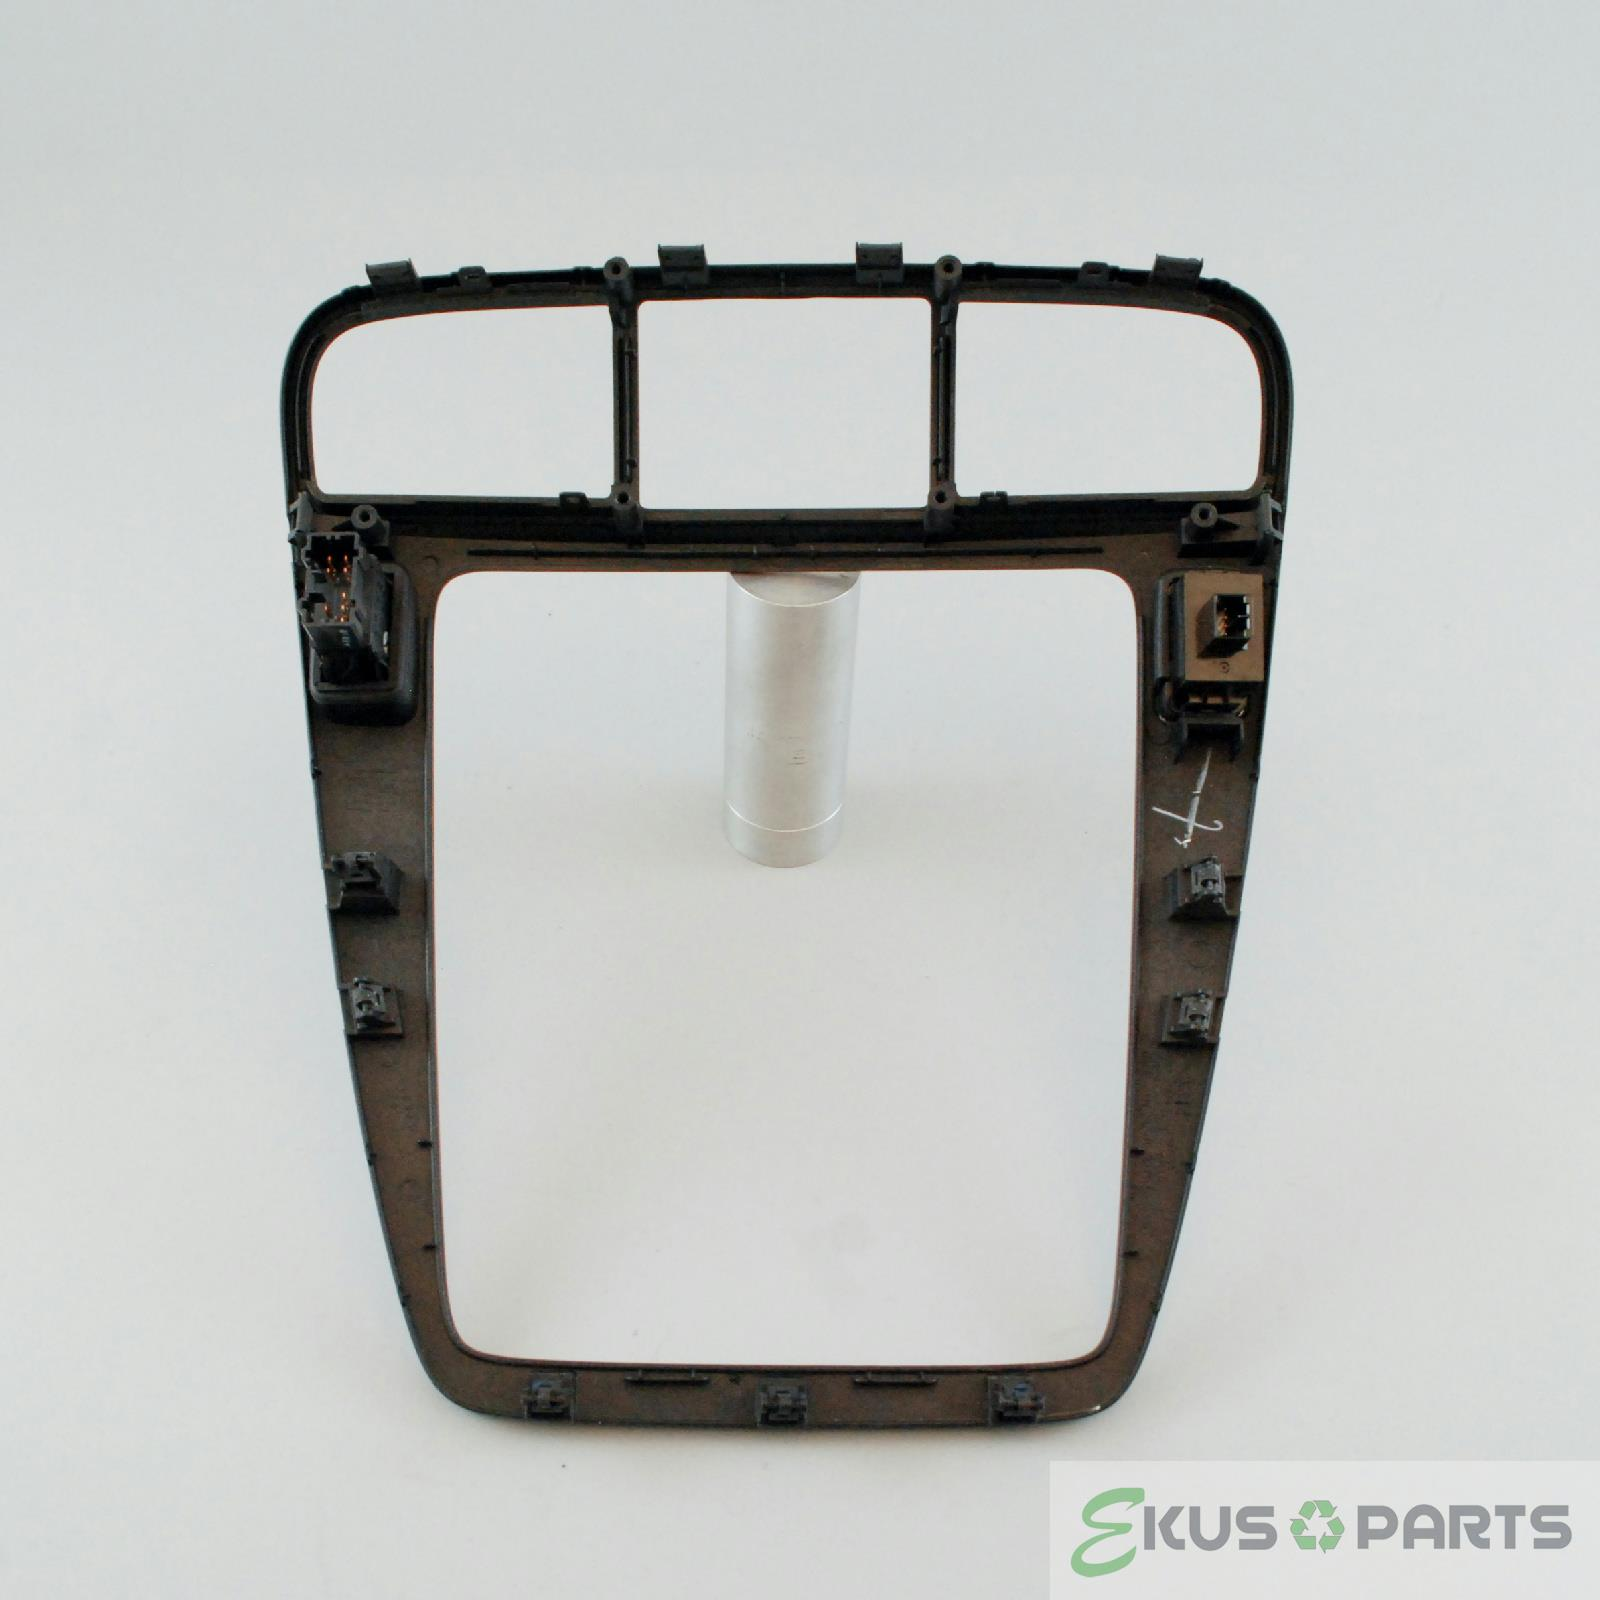 2001-2005 Acura MDX Radio Climate Center Dash Trim Bezel W